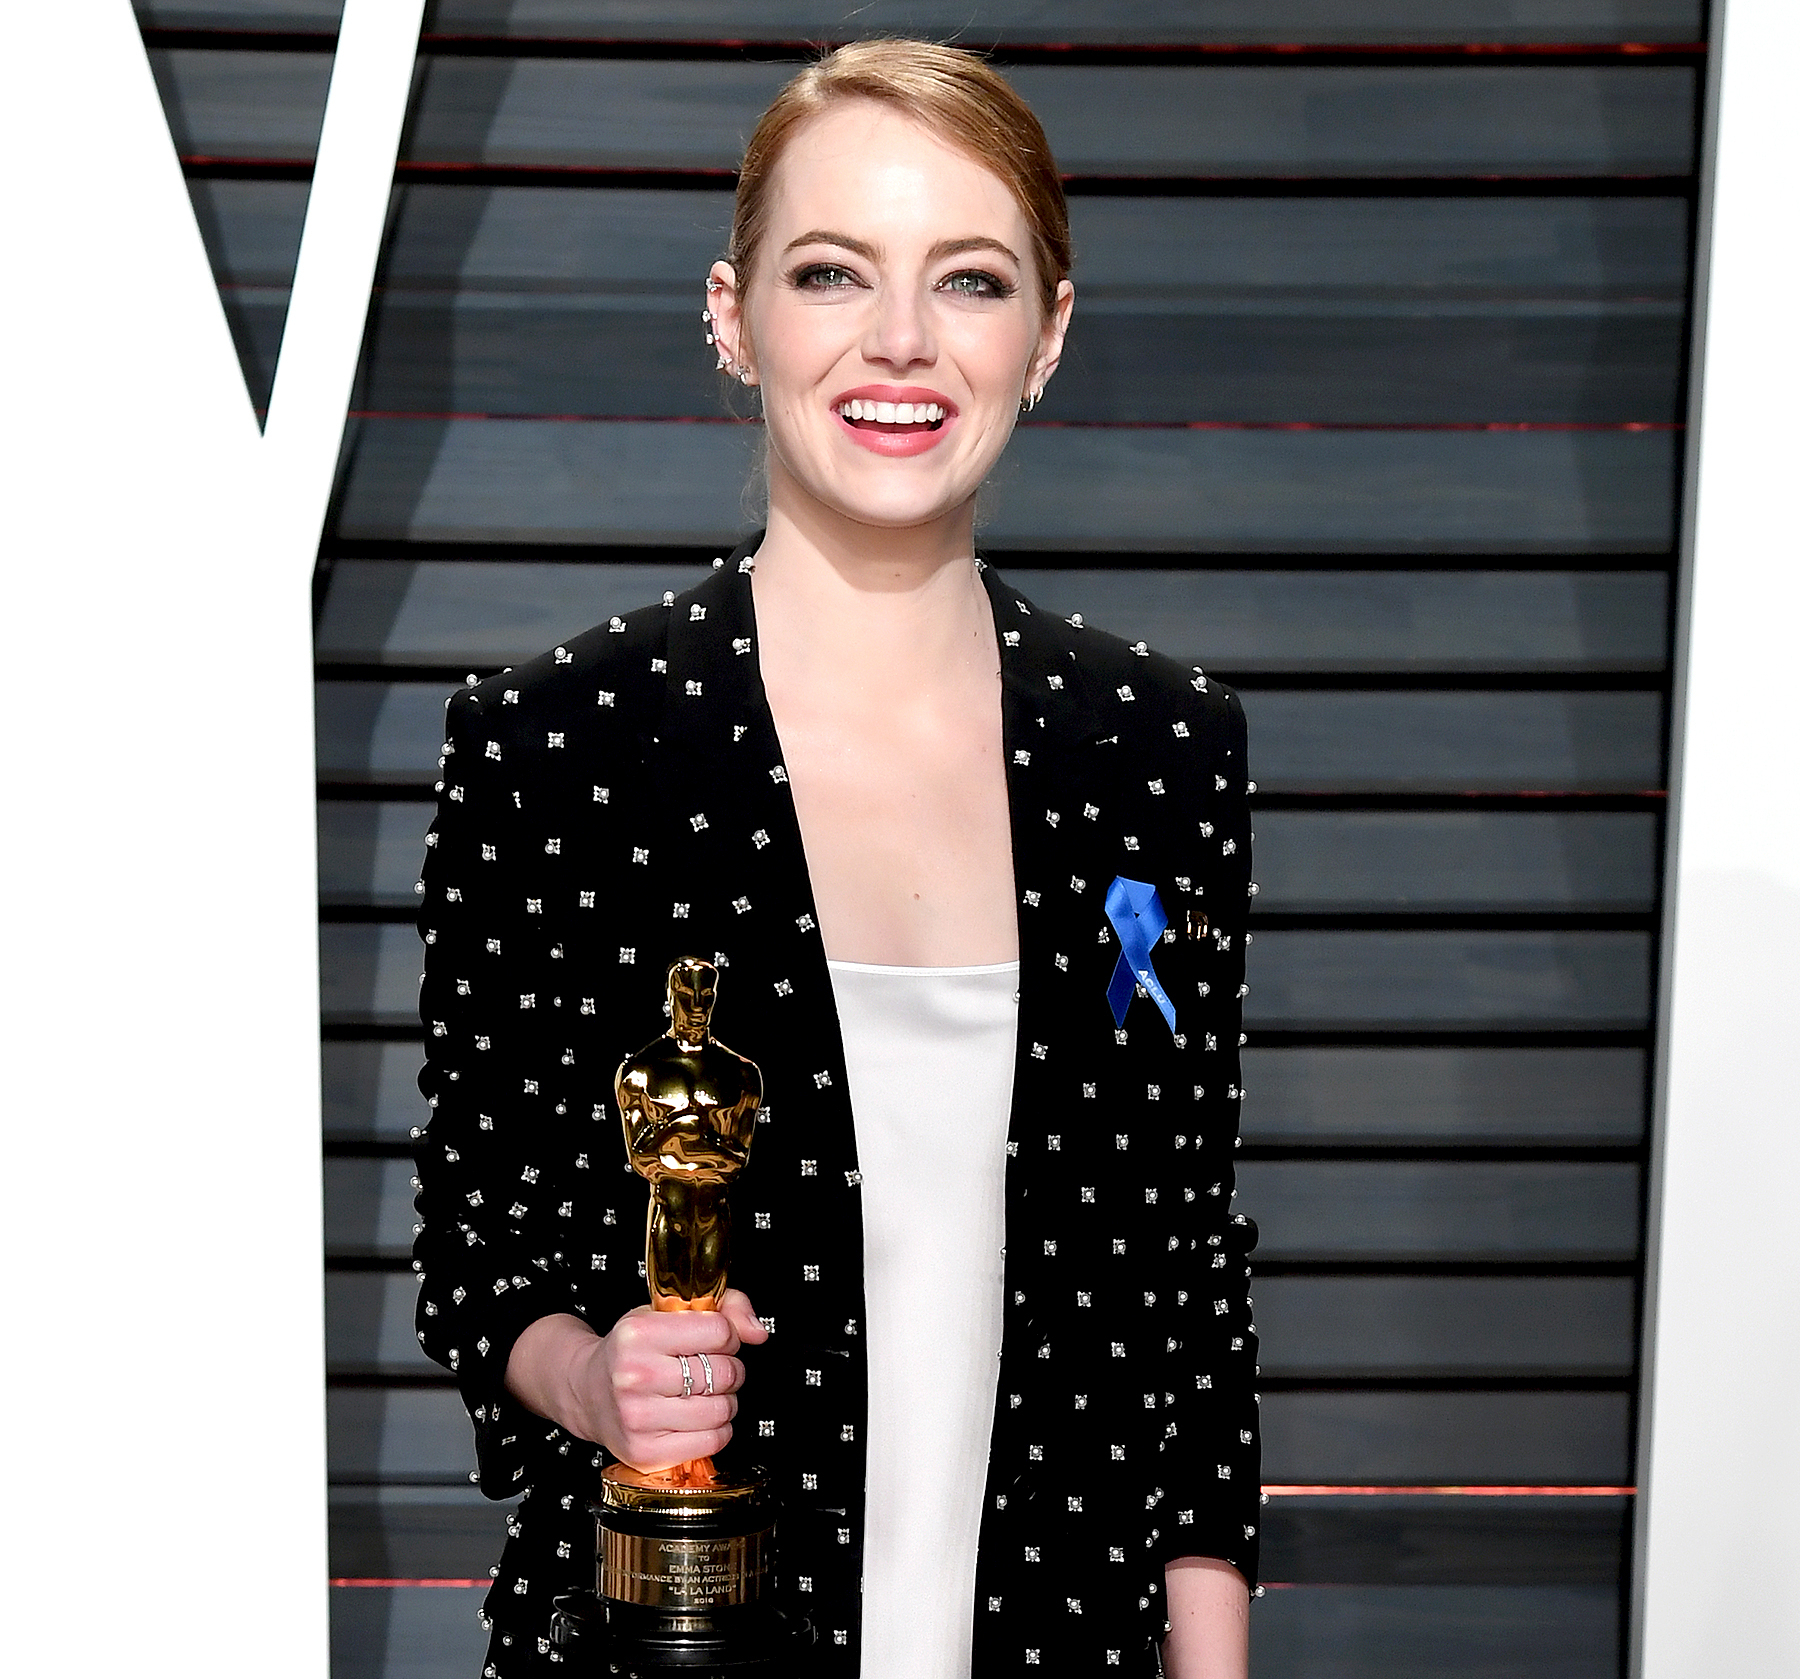 Emma Stone with her Oscar for Best Actress for 'La La Land' arriving at the 'Vanity Fair' Oscar Party in Beverly Hills, Los Angeles, USA.